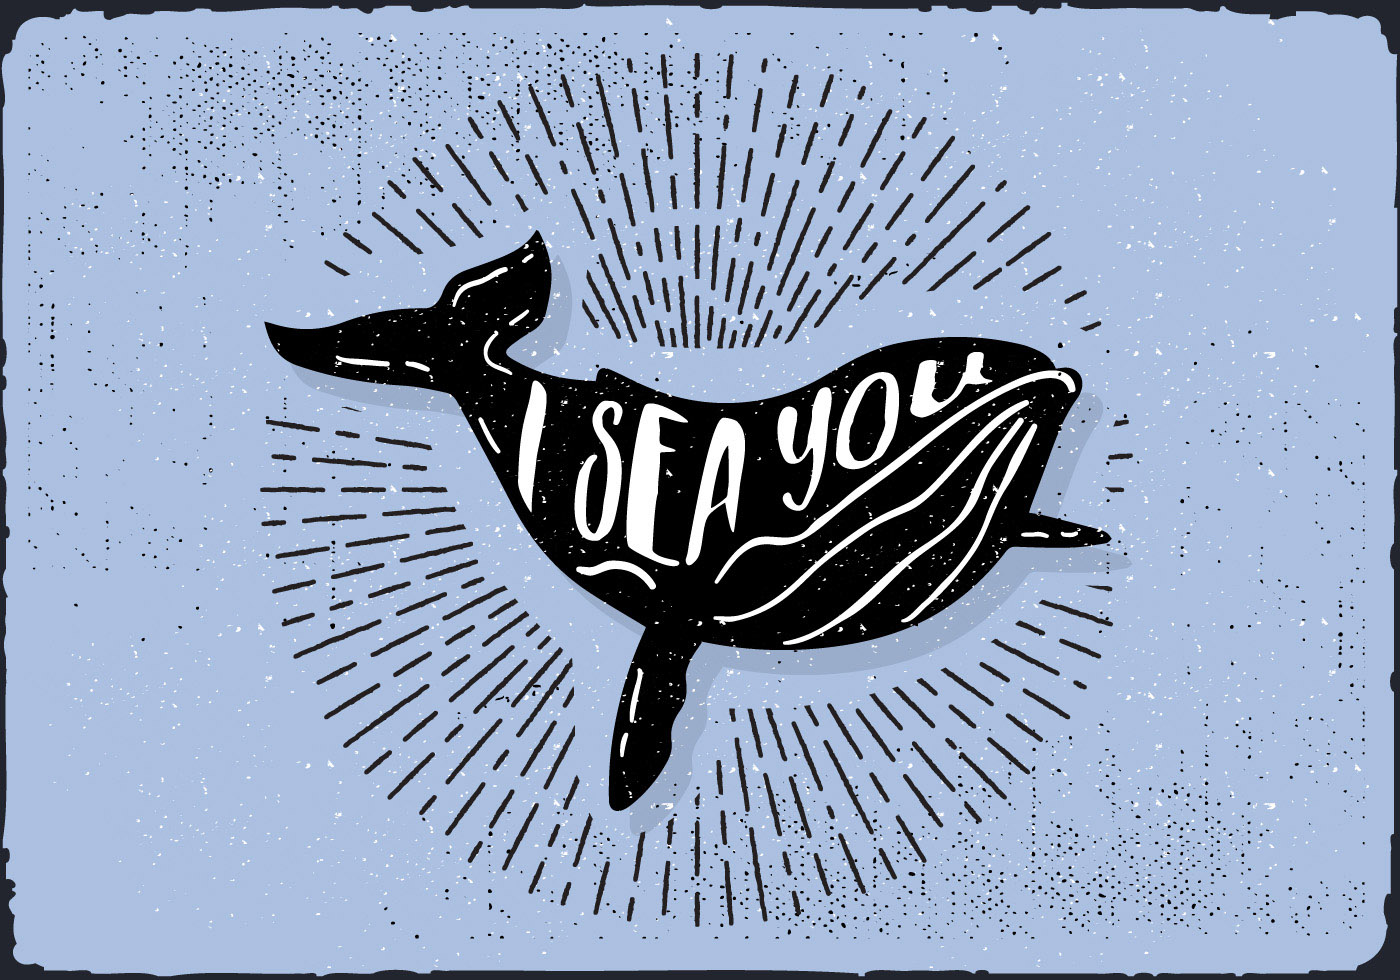 Free Hand Drawn Whale Background Download Free Vectors